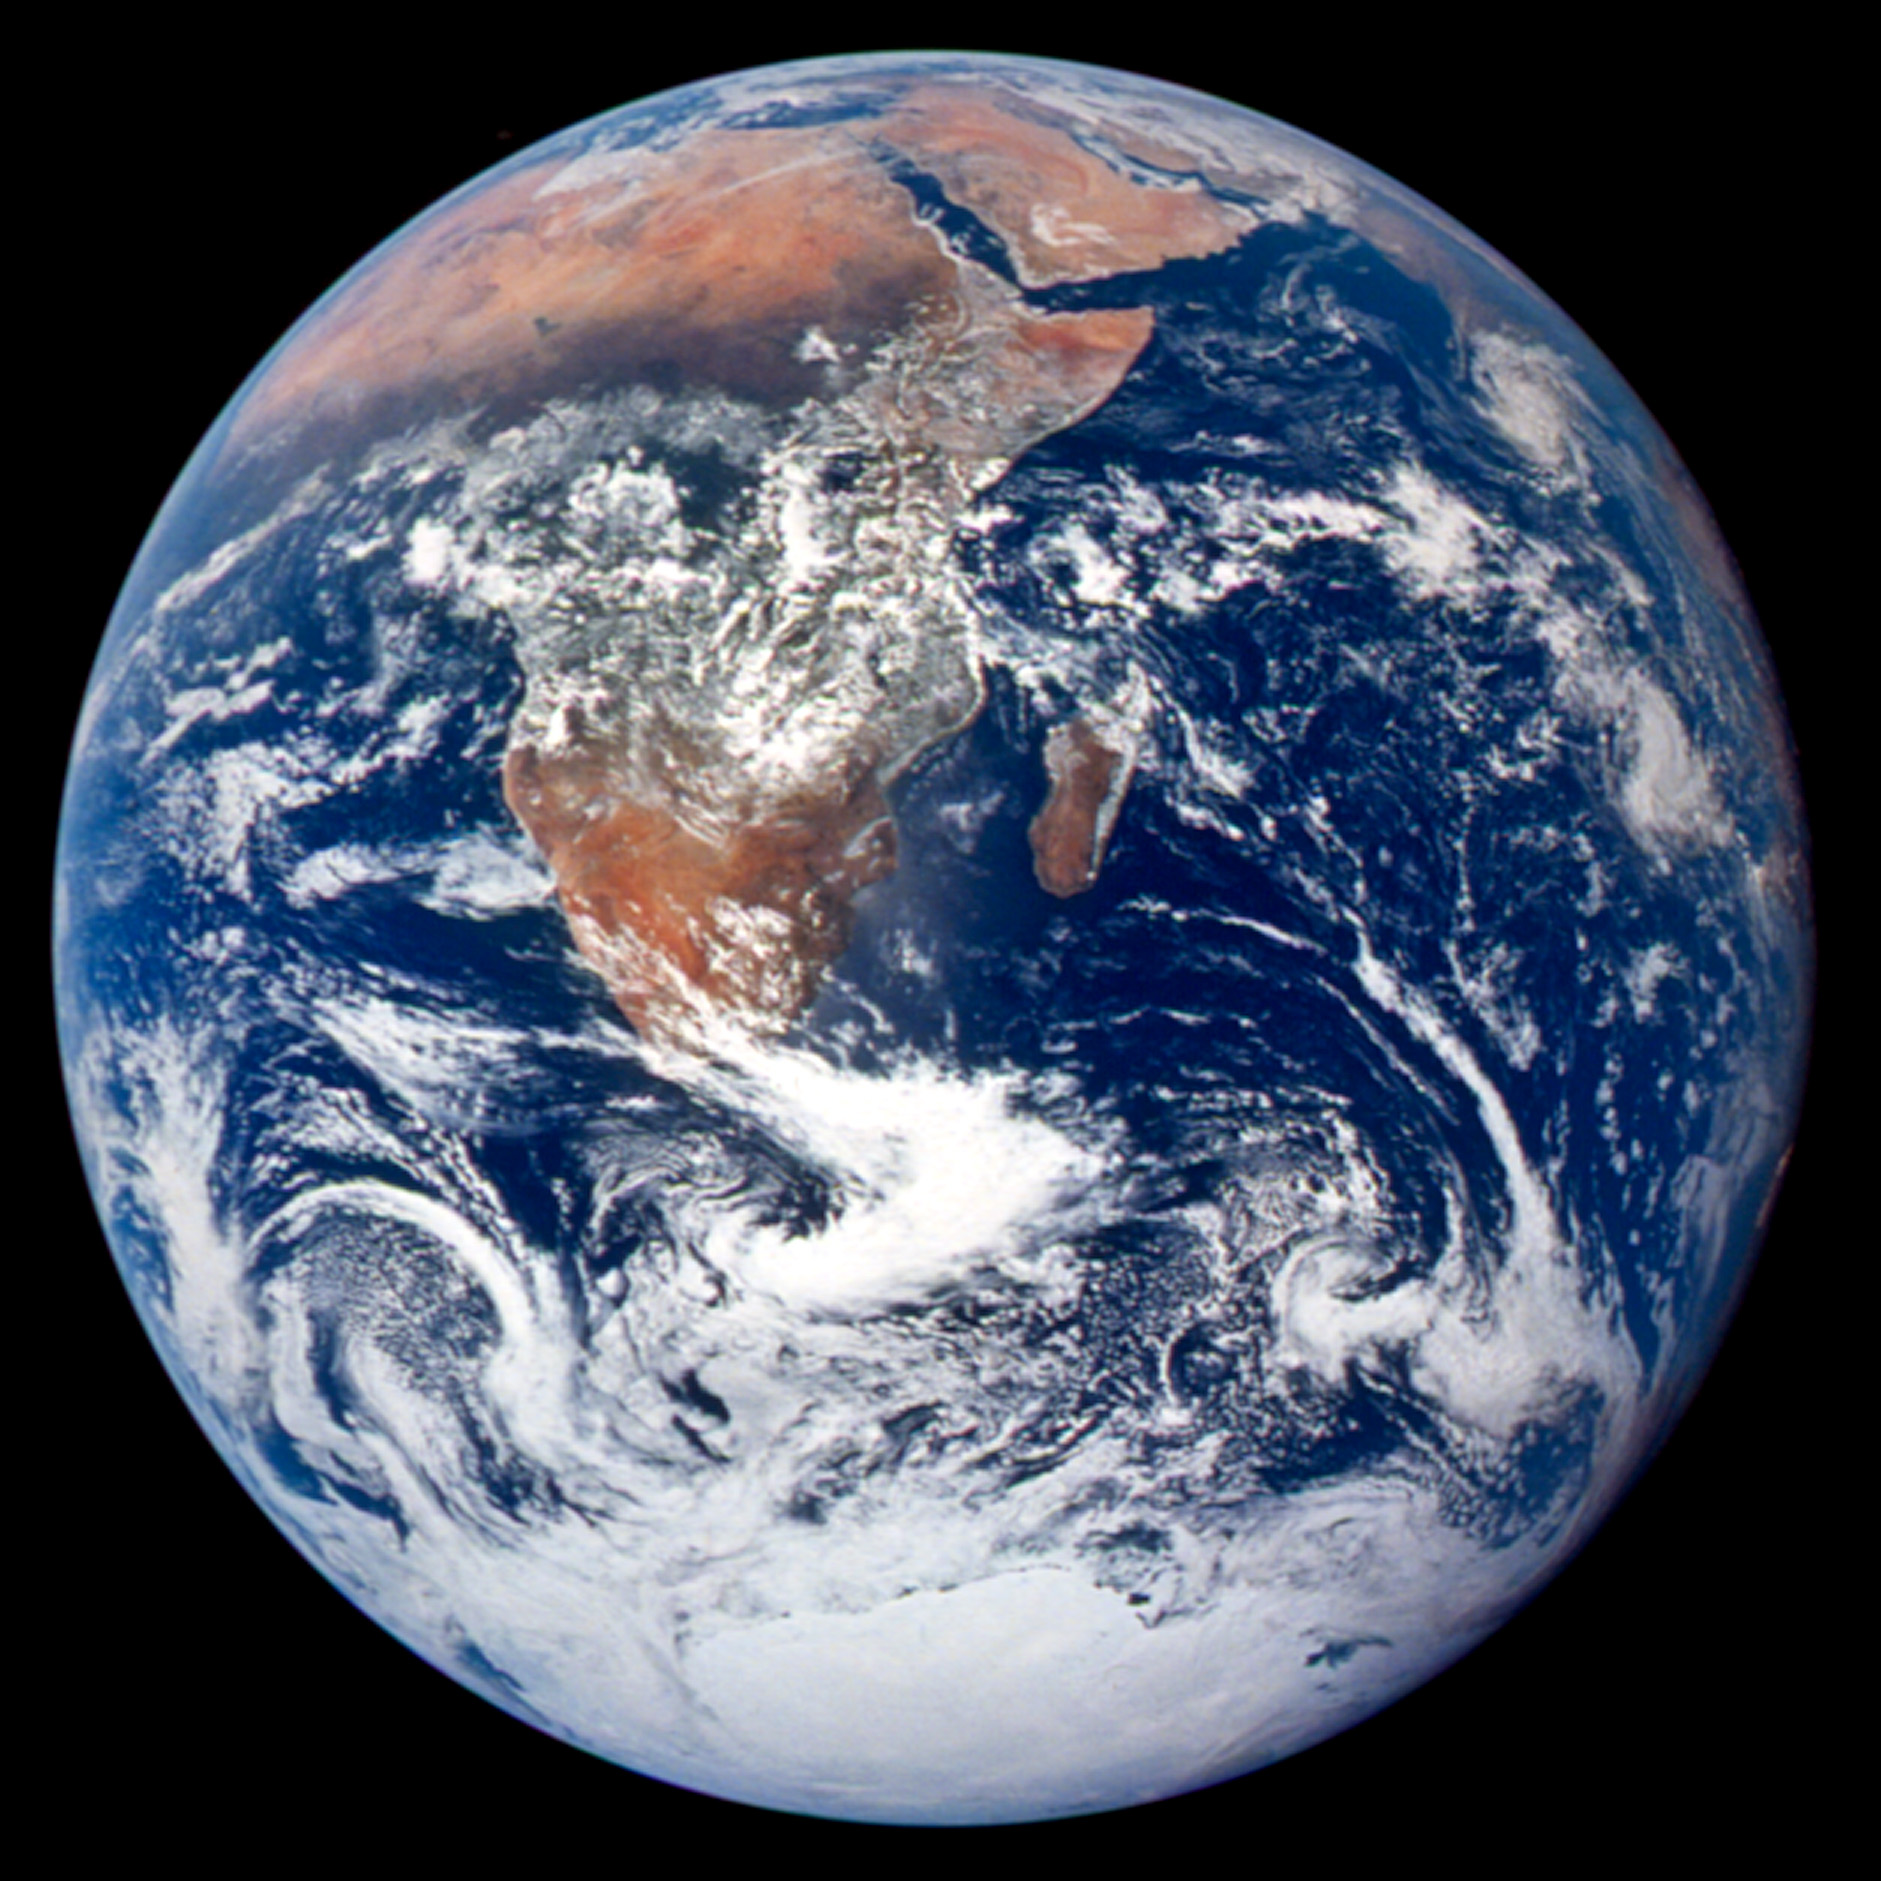 BLUE MARBLE 1972. This classic photograph of the Earth was taken on December 7, 1972. The original caption is reprinted below:  View of the Earth as seen by the Apollo 17 crew traveling toward the moon. This translunar coast photograph extends from the Mediterranean Sea area to the Antarctica south polar ice cap. This is the first time the Apollo trajectory made it possible to photograph the south polar ice cap. Note the heavy cloud cover in the Southern Hemisphere. Almost the entire coastline of Africa is clearly visible. The Arabian Peninsula can be seen at the northeastern edge of Africa. The large island off the east coast of Africa is the Republic of Madagascar. The Asian mainland is on the horizon toward the northeast. Astronaut photograph AS17-148-22727 courtesy NASA Johnson Space Center Gateway to Astronaut Photography of Earth